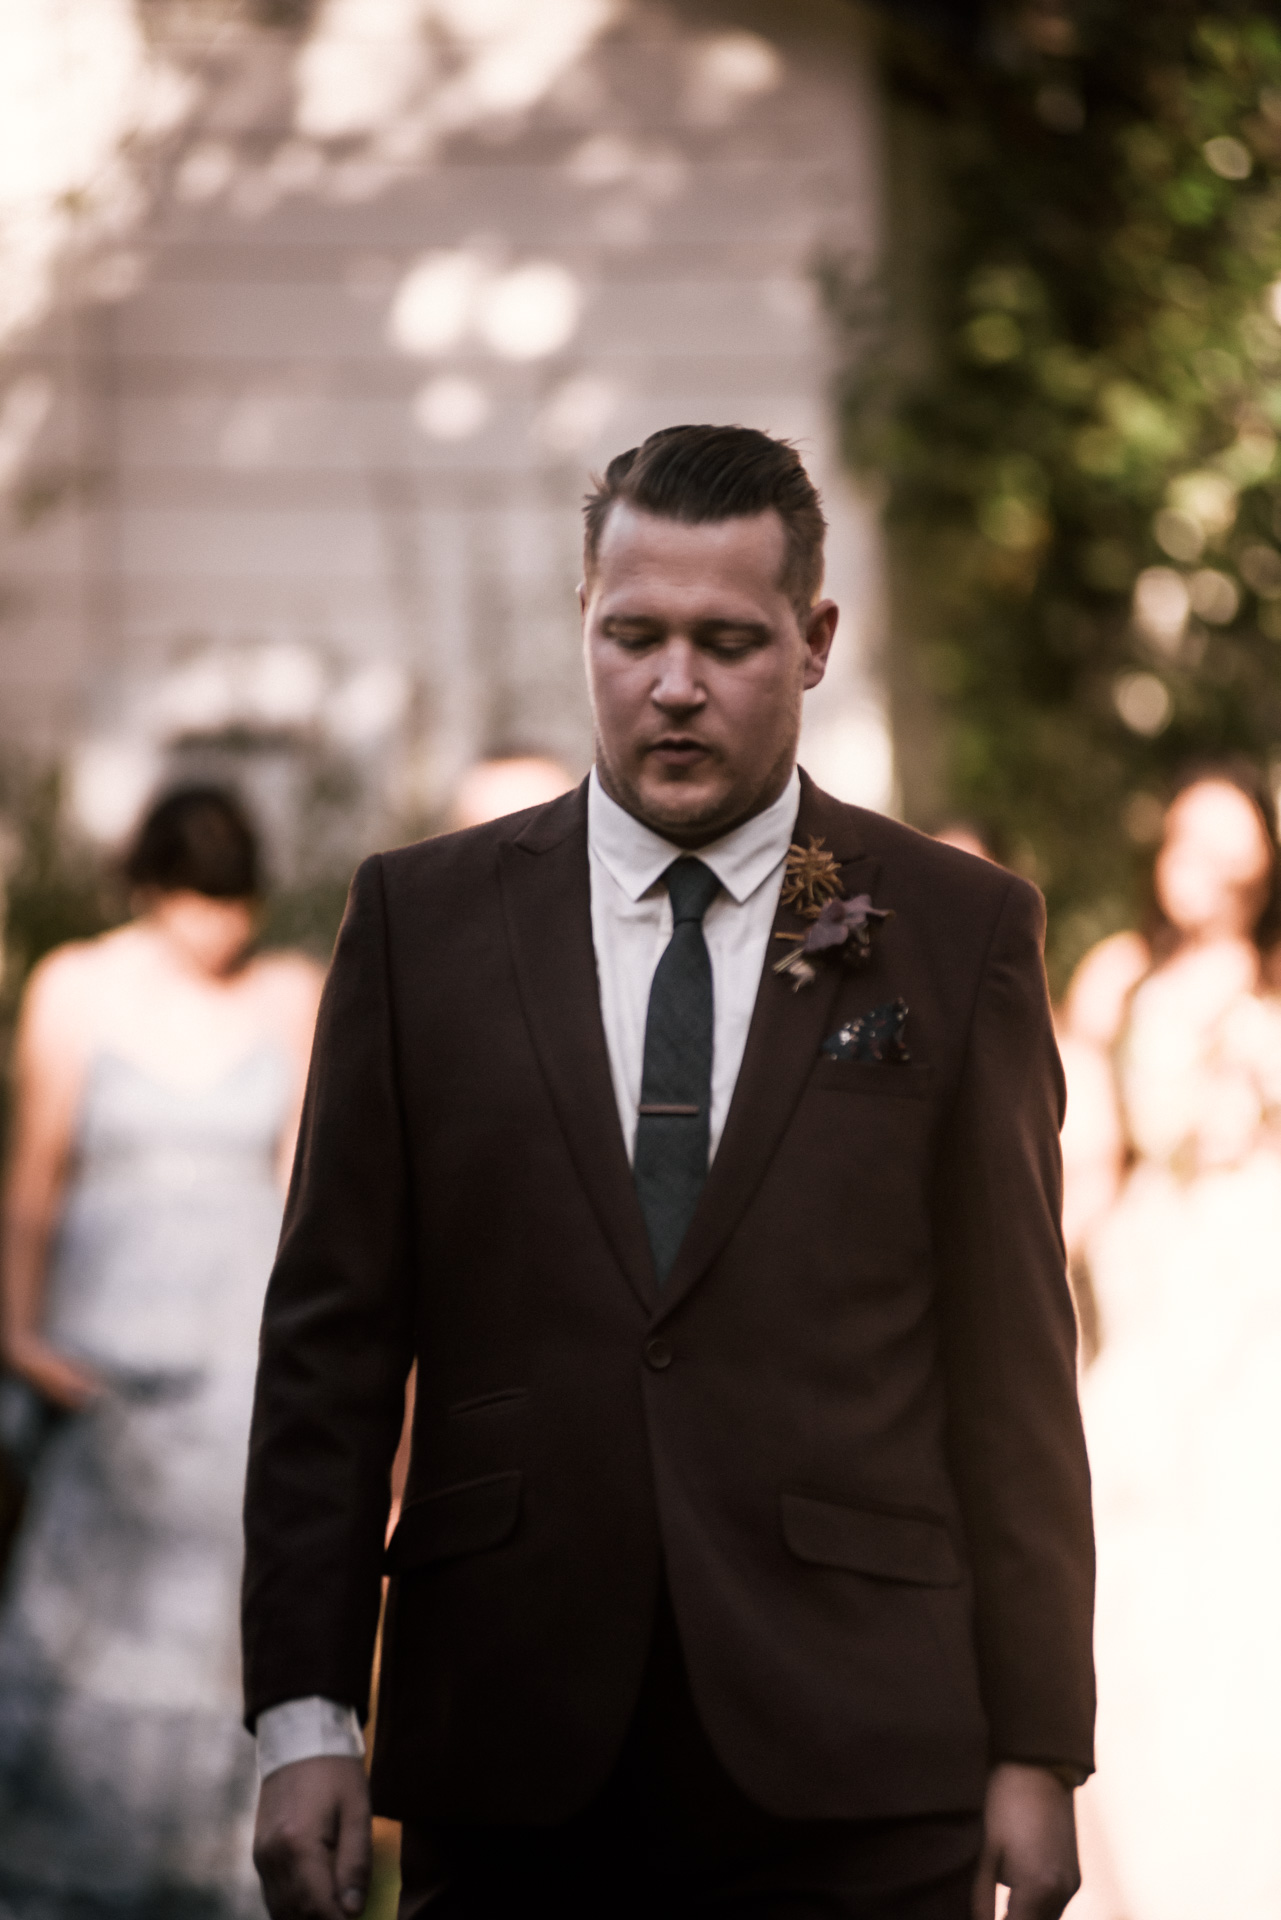 groomsmen walking down the aisle shot by wedding photographer at the charming St. George Hotel in Volcano California